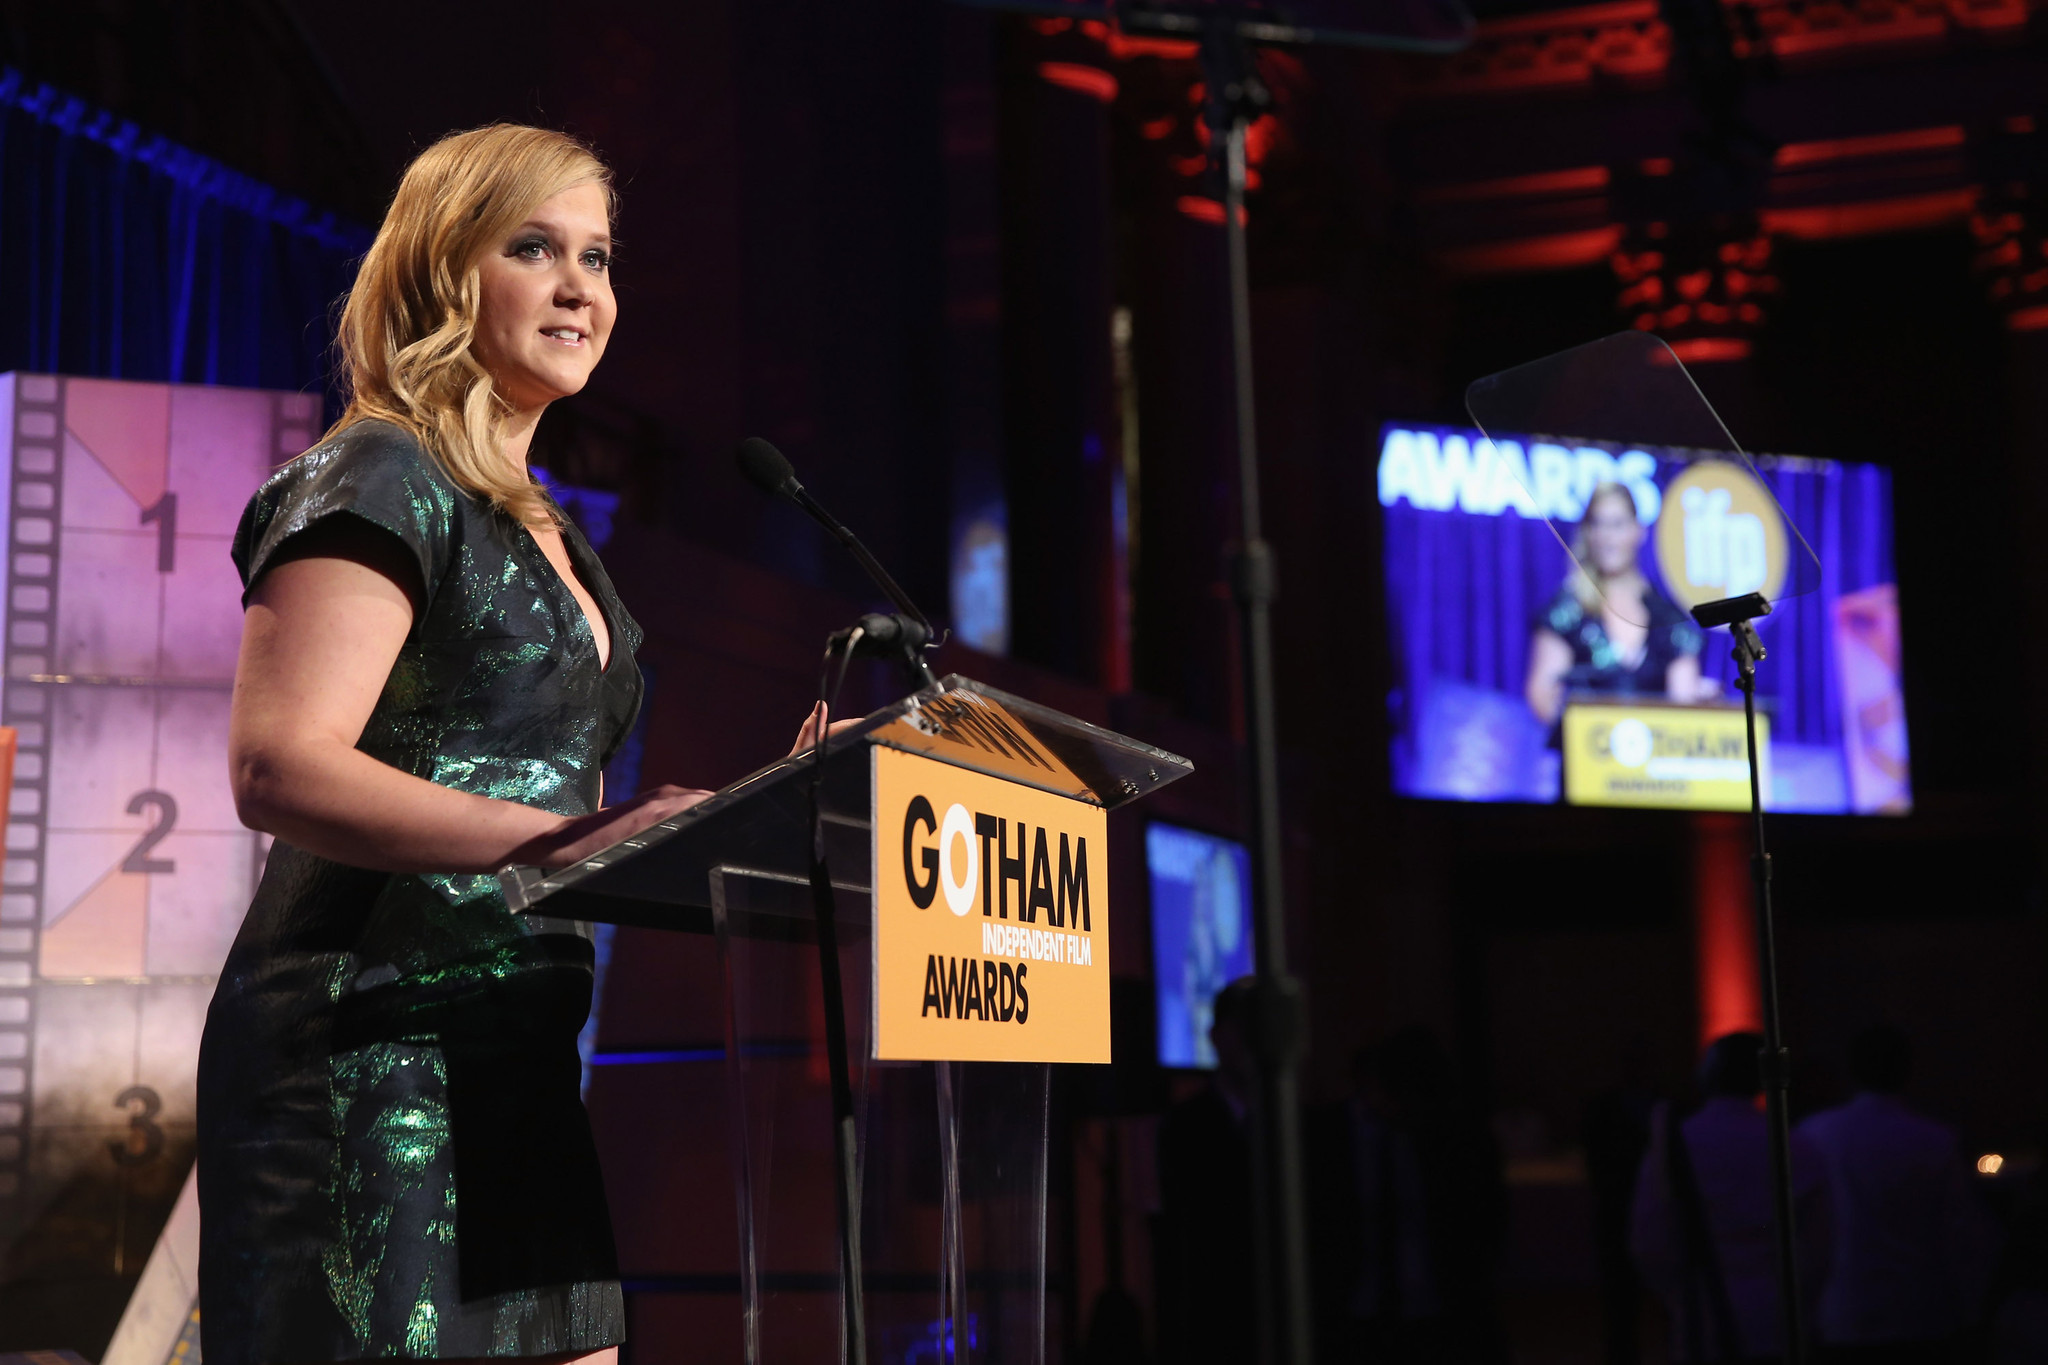 Image result for AMY schumer award shows